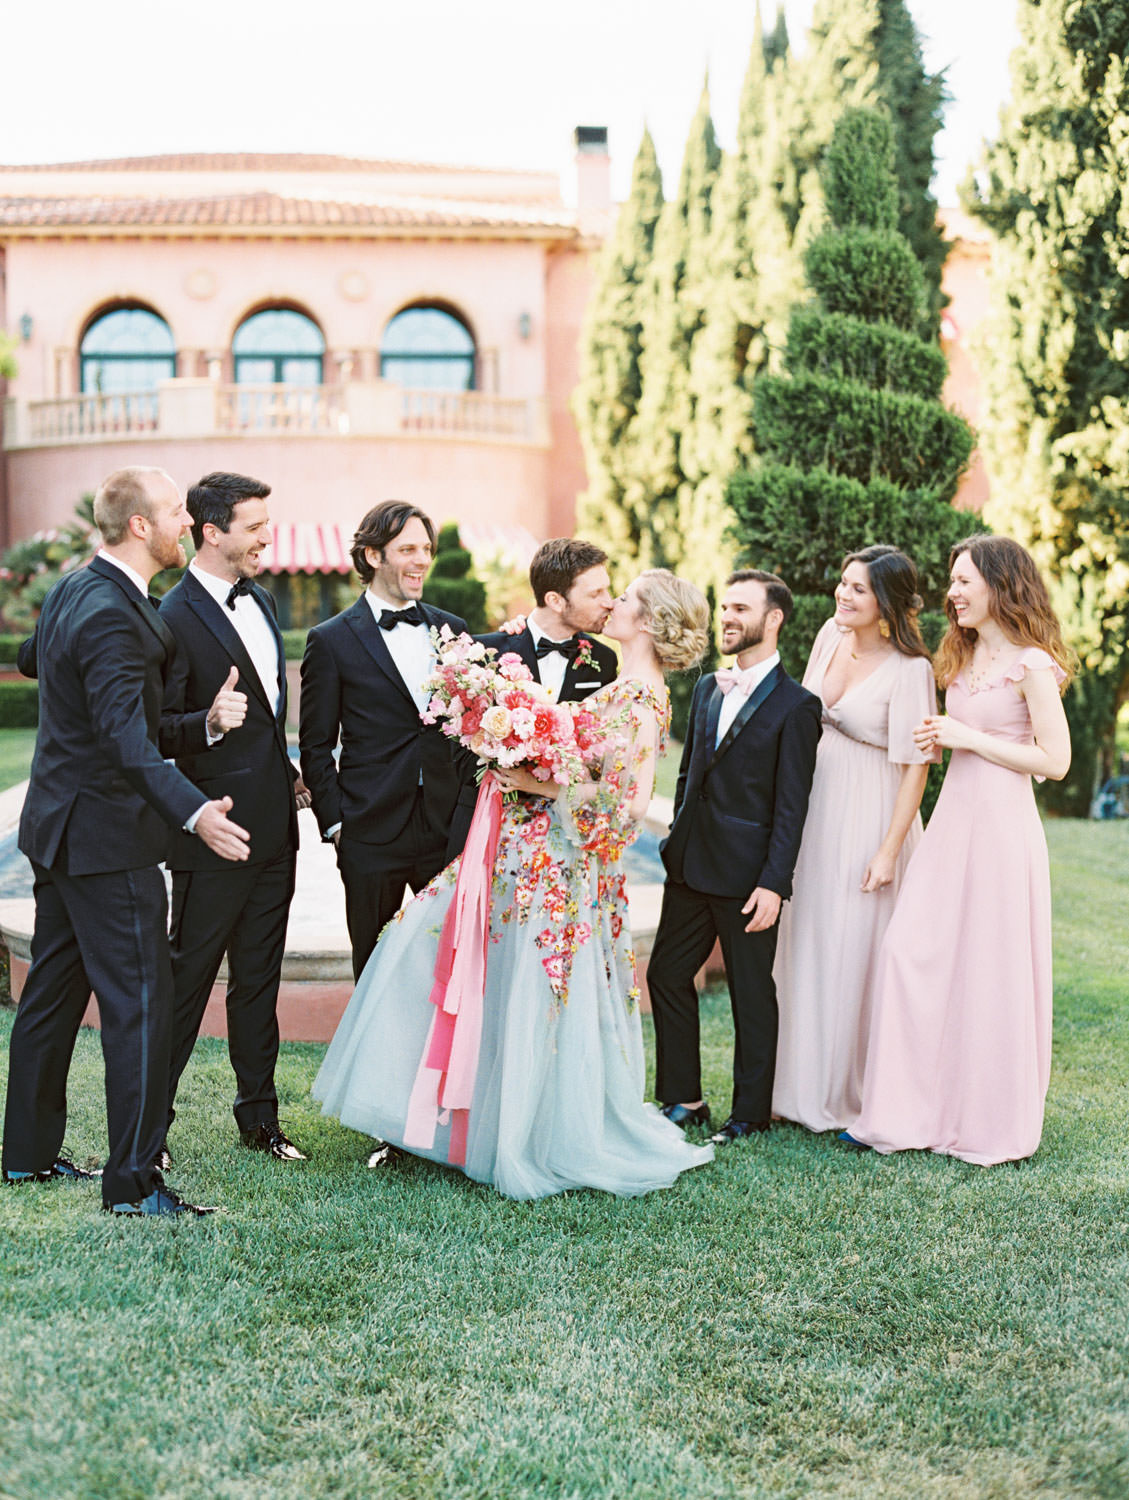 Groom and groomsmen in black tuxedos with bridesmaids in mix match pink gowns and Groom in a black tux walking with bride wearing a colorful Marchesa blue and pink floral long sleeve couture gown with floral appliques on the Aria Lawn for bridal party portraits. Fairmont Grand del Mar wedding published on Martha Stewart Weddings